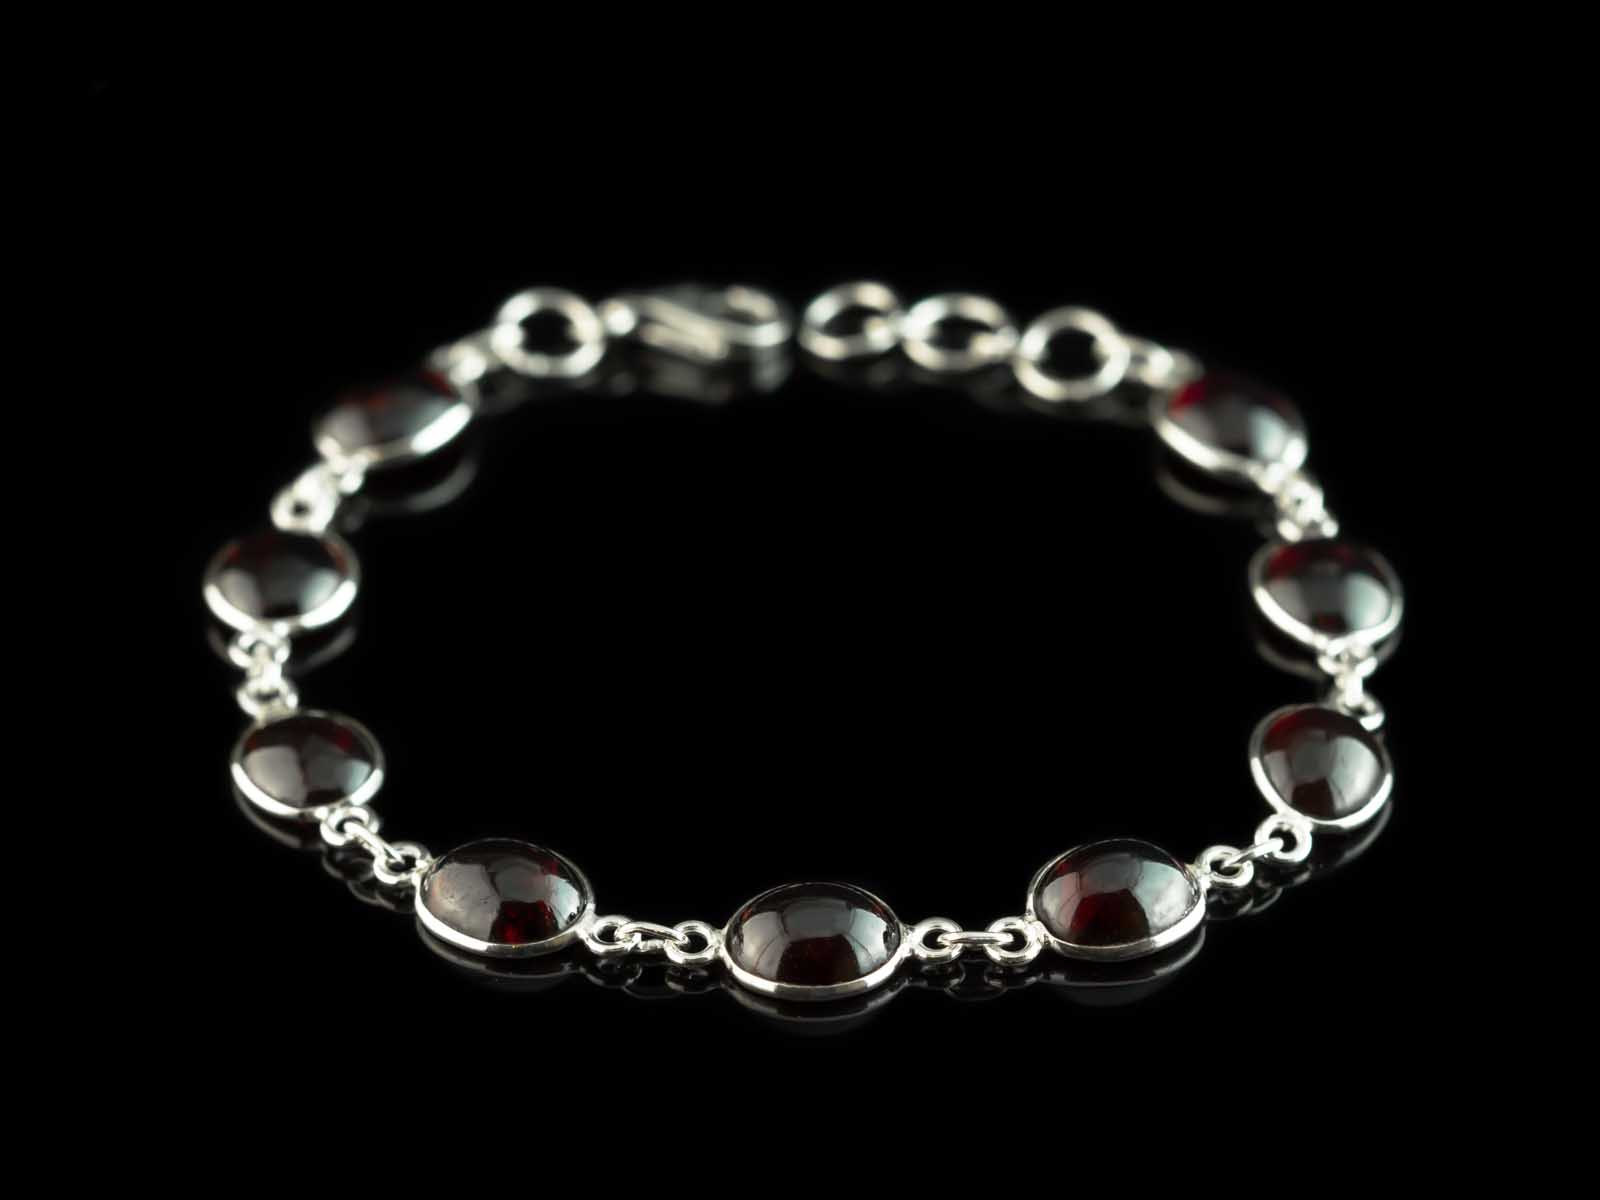 il heranniversary fullxfull garnet oil bracelethappy jewelry p diffuser for braceletgift red strong marriage love happy gift amethyst wine giftessential bracelet